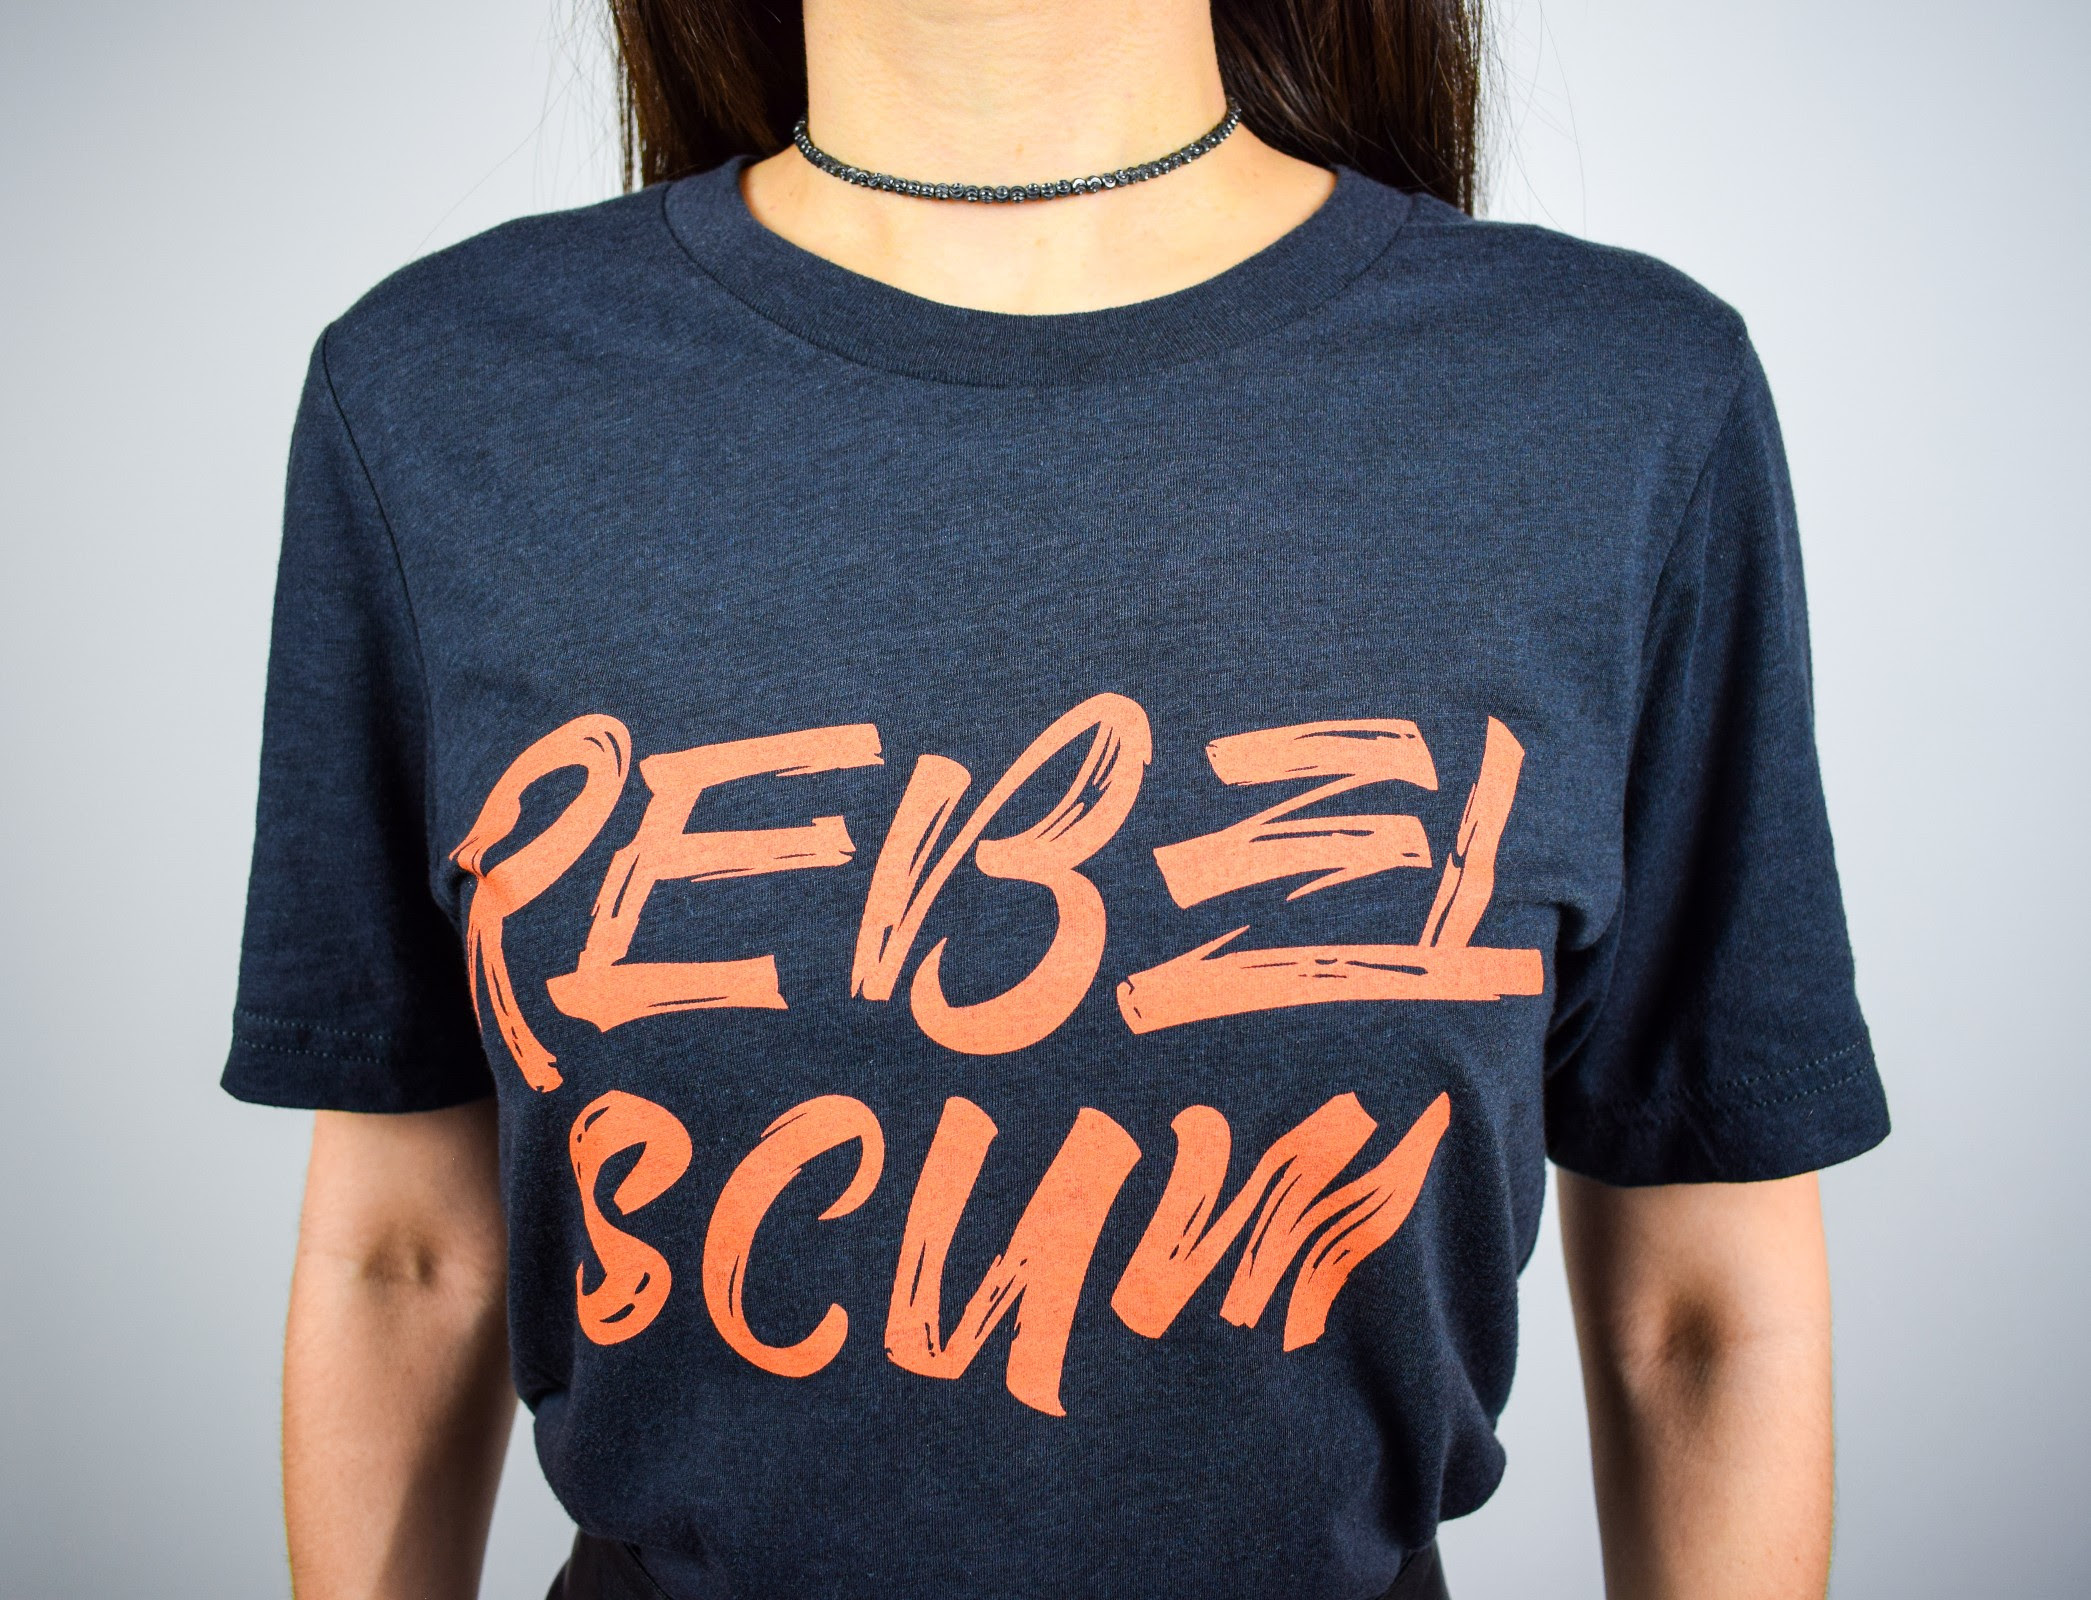 Star Wars OOTD: Rebel Scum | Anakin and His Angel